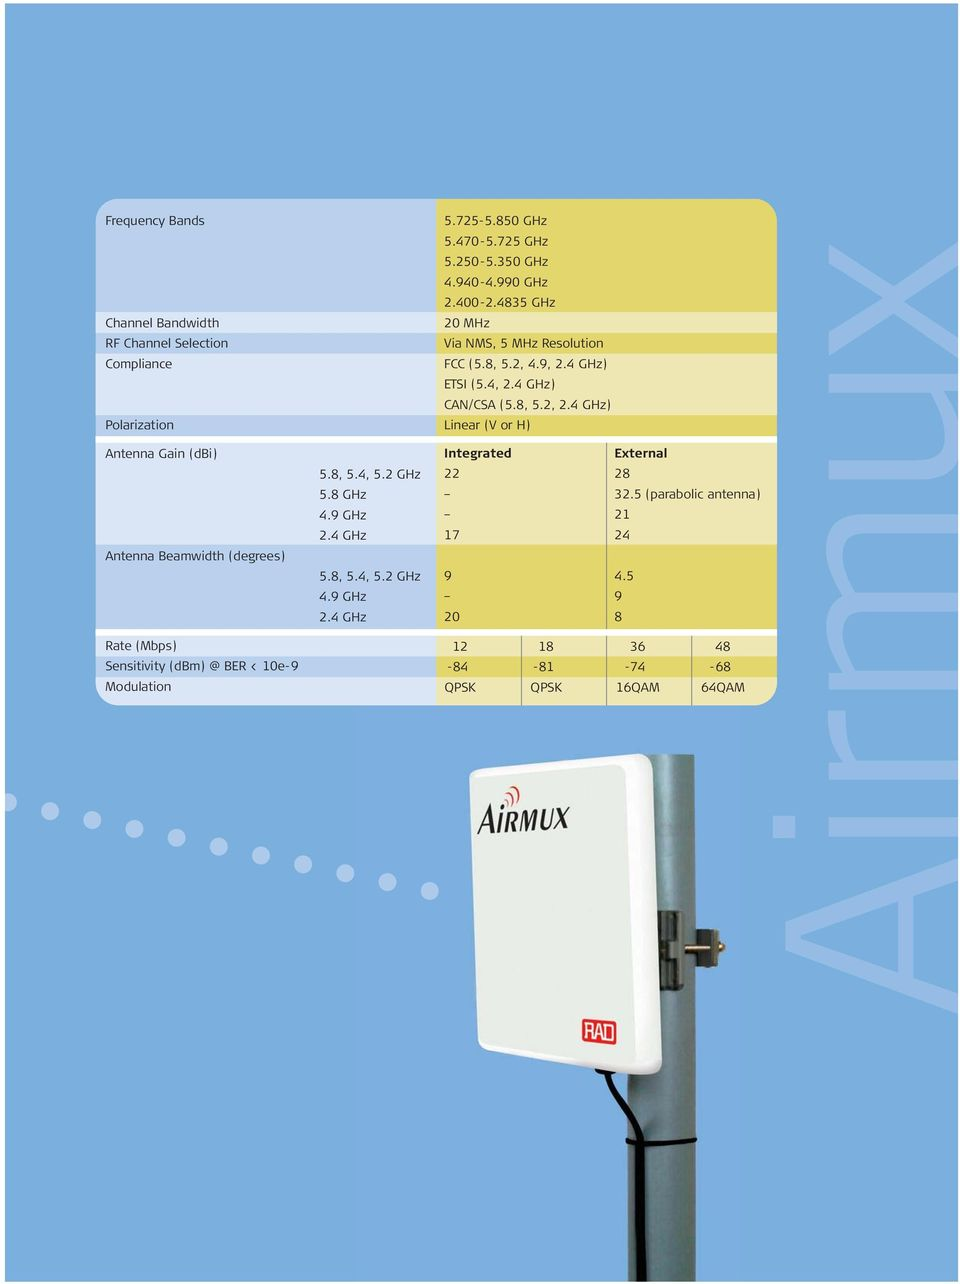 4 GHz) Linear (V or H) Antenna Gain (dbi) Antenna Beamwidth (degrees) 5.8, 5.4, 5.2 GHz 5.8 GHz 4.9 GHz 2.